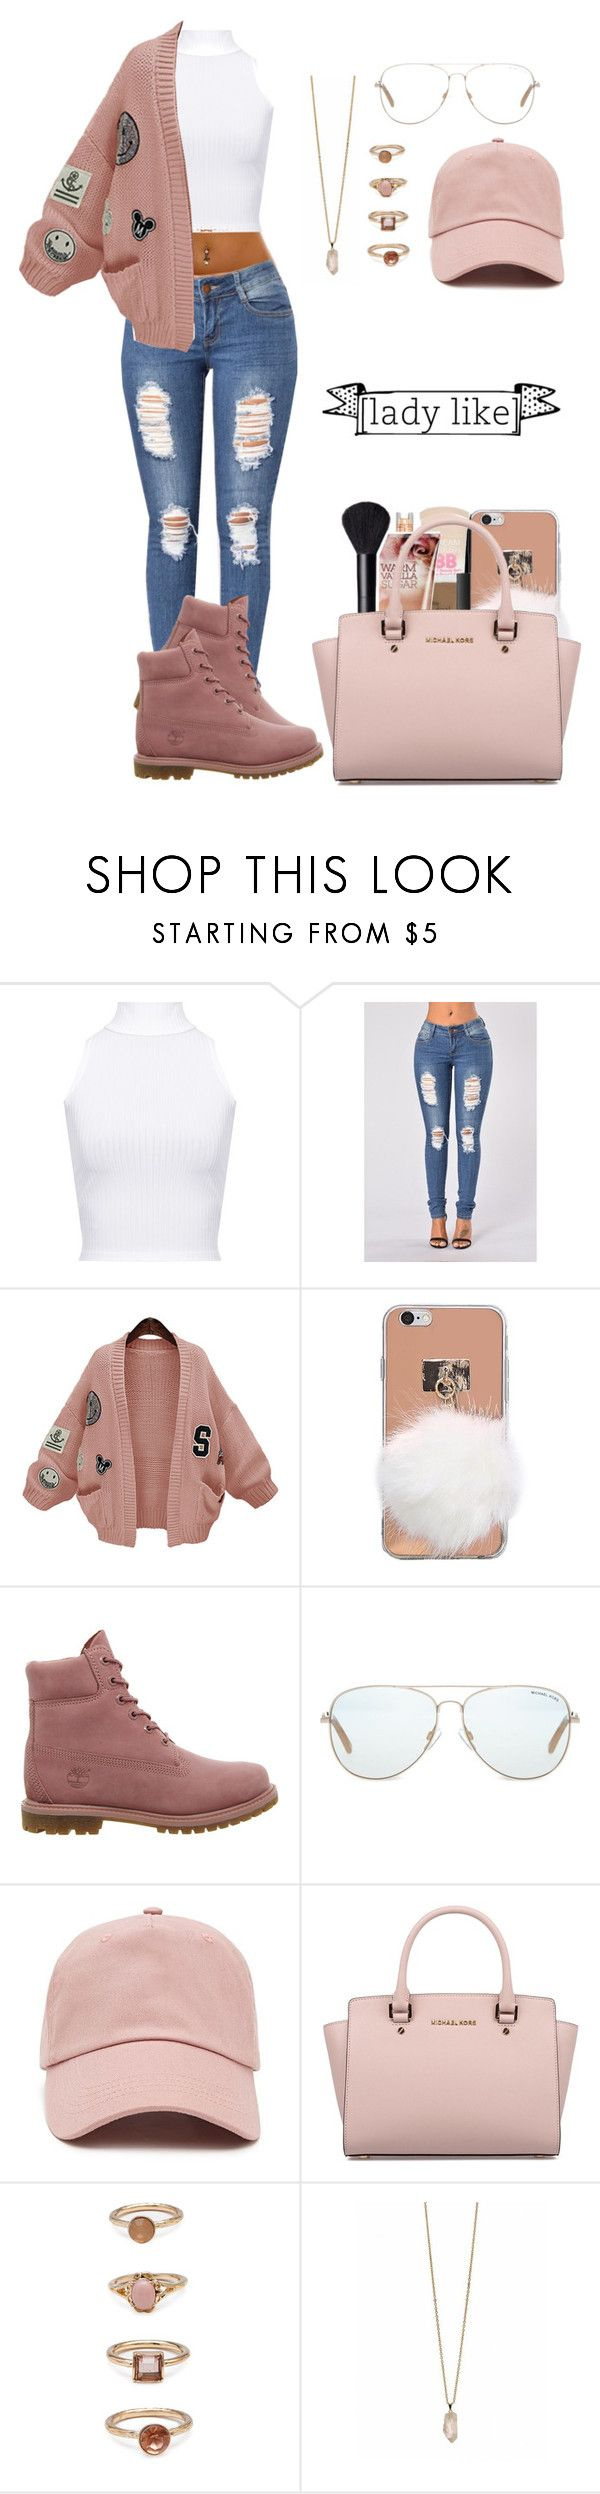 Lady like by life957 on Polyvore featuring WithChic, WearAll, Timberland, Michael Kors, Zoya and Forever 21